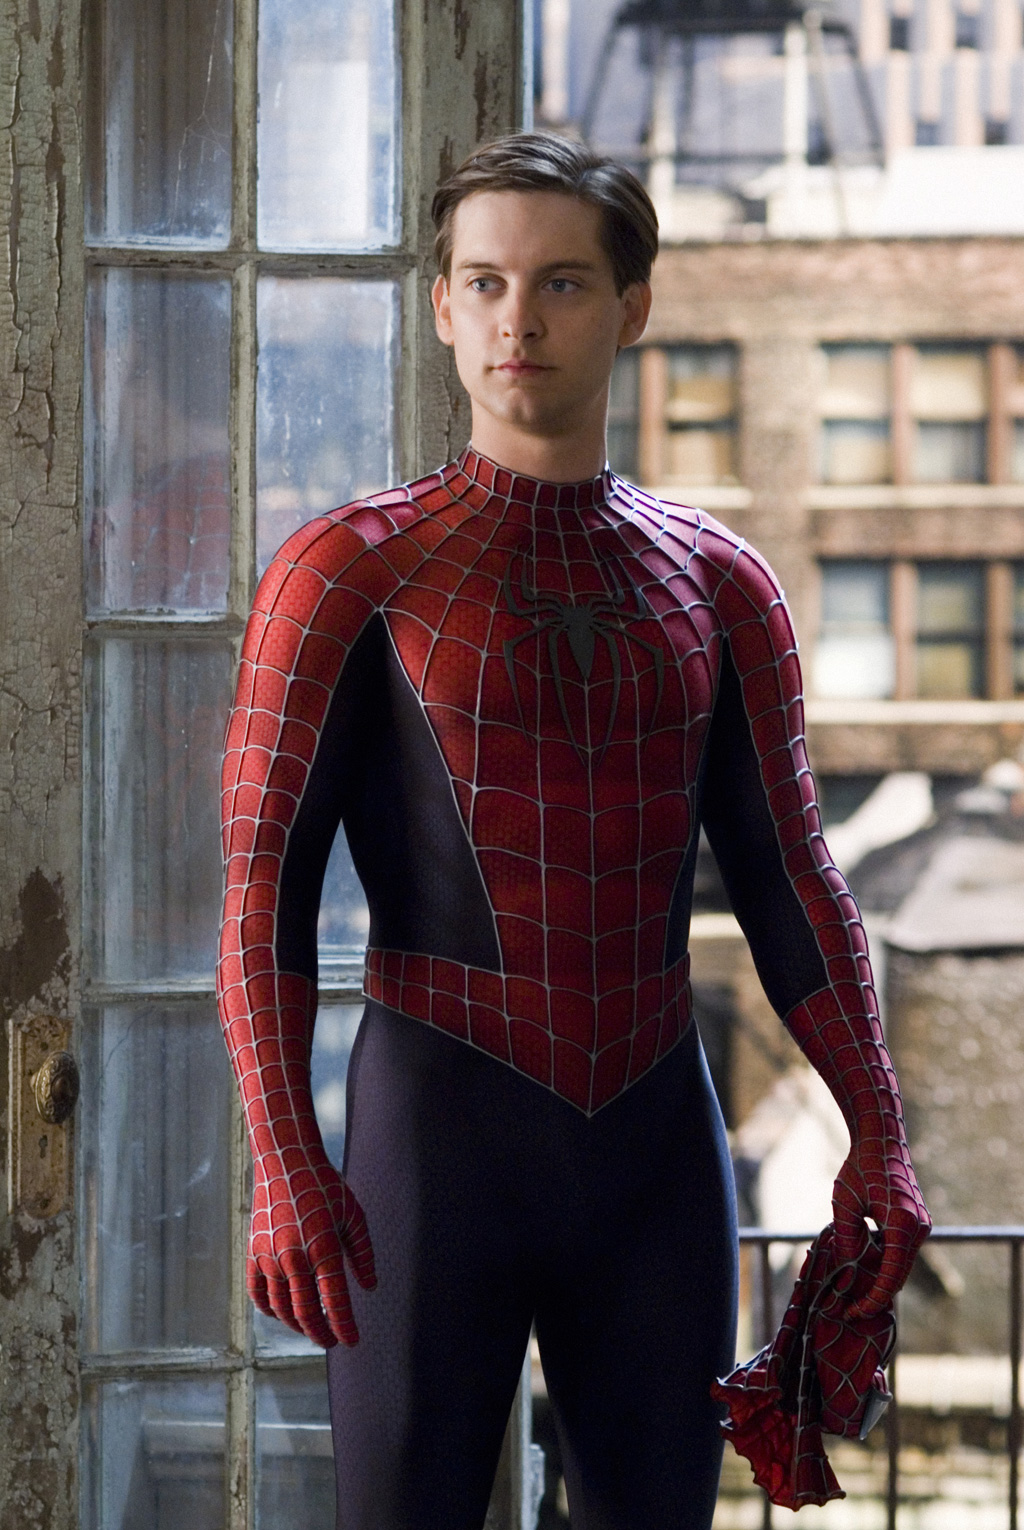 The Amazing Spider Man 2 S New Suit Looks Closer To The